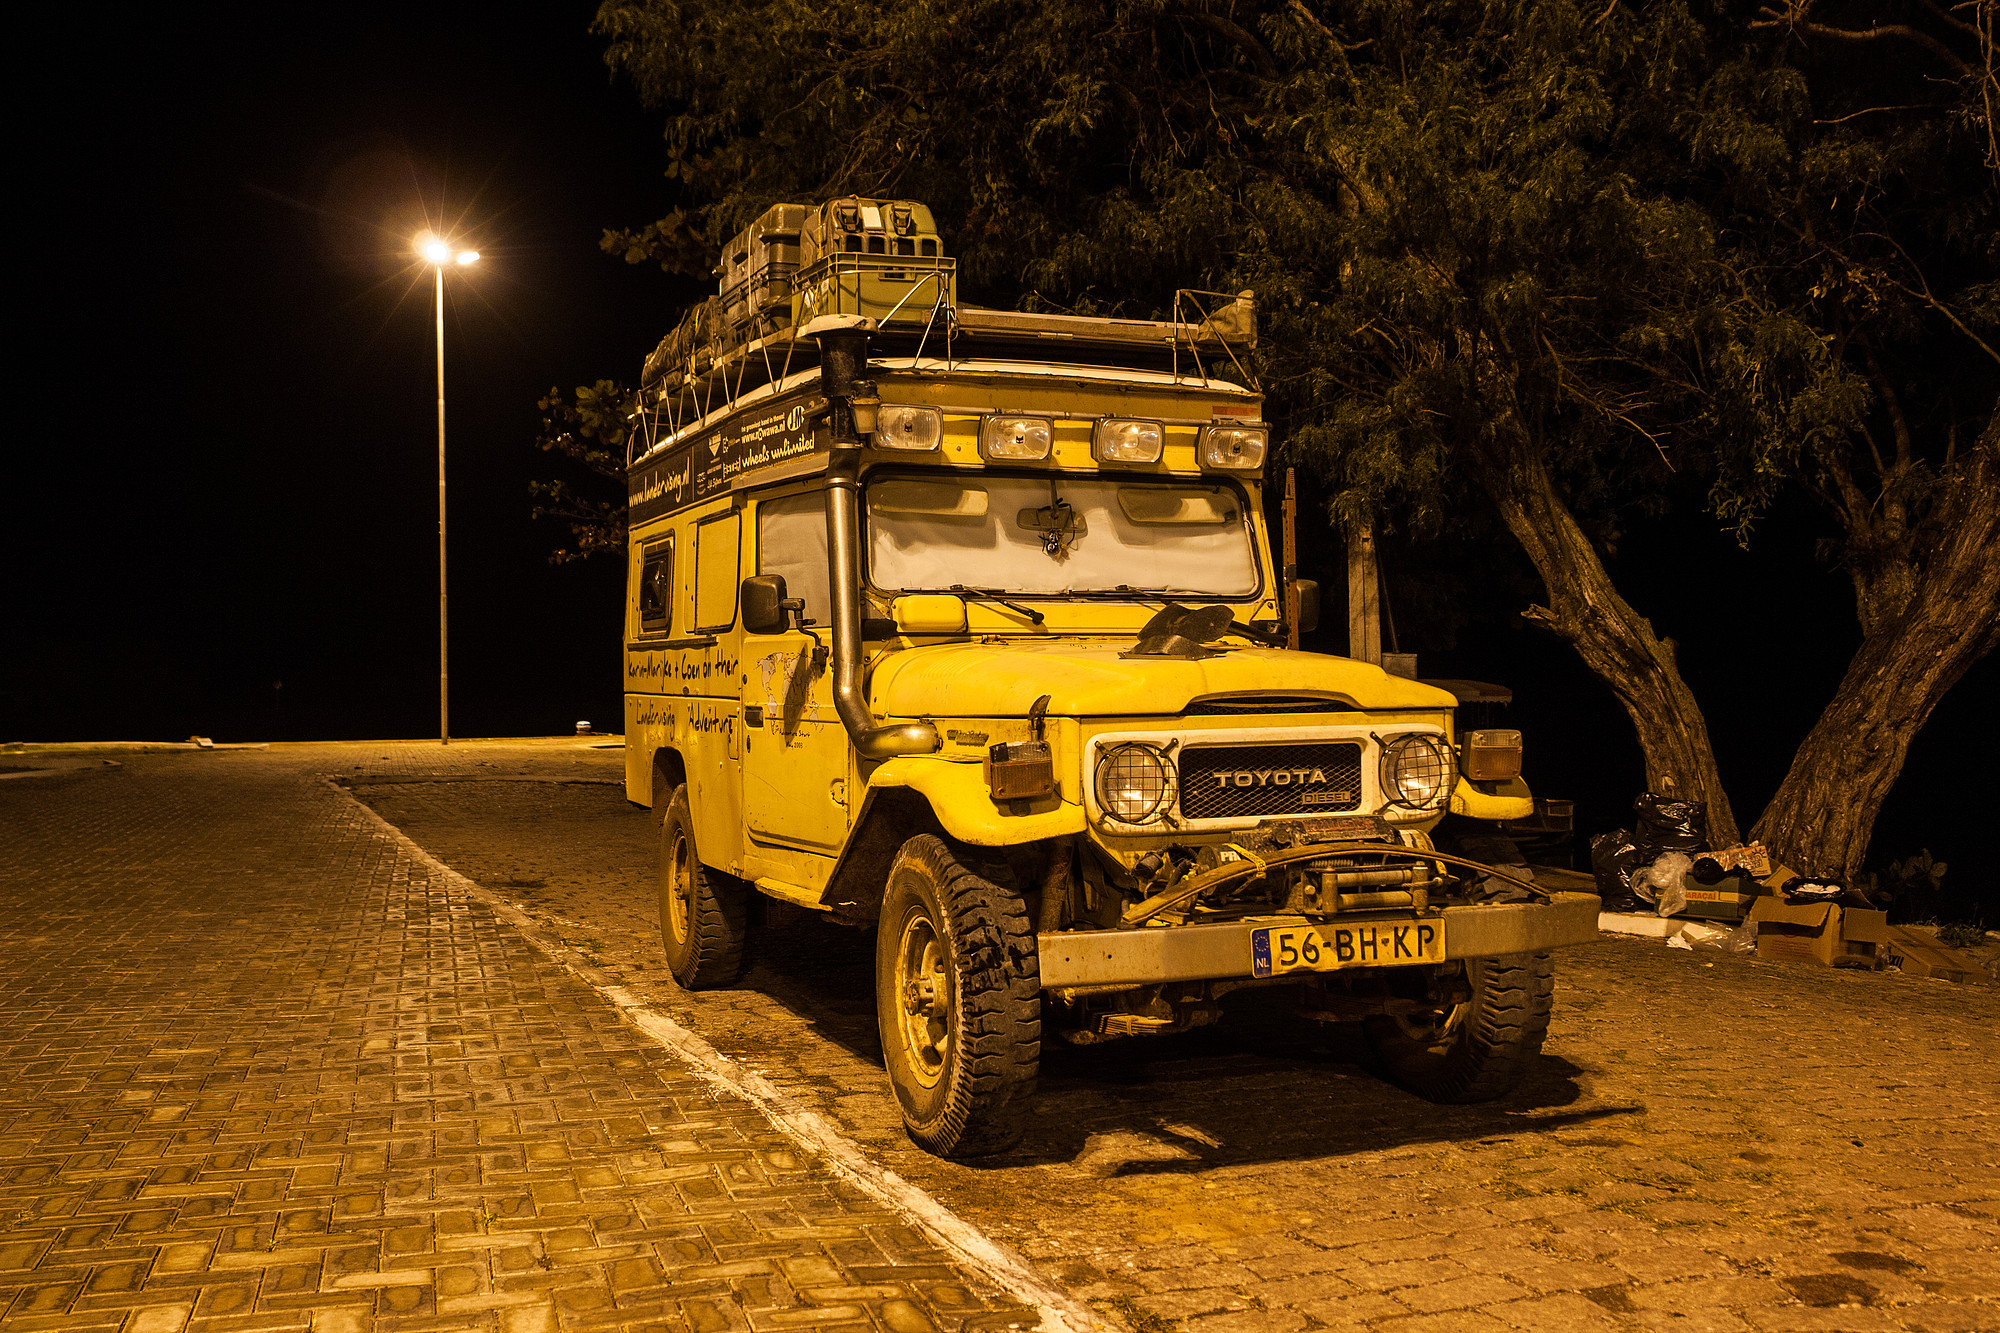 Tips on Keeping your Overland Vehicle safe, low-budget style